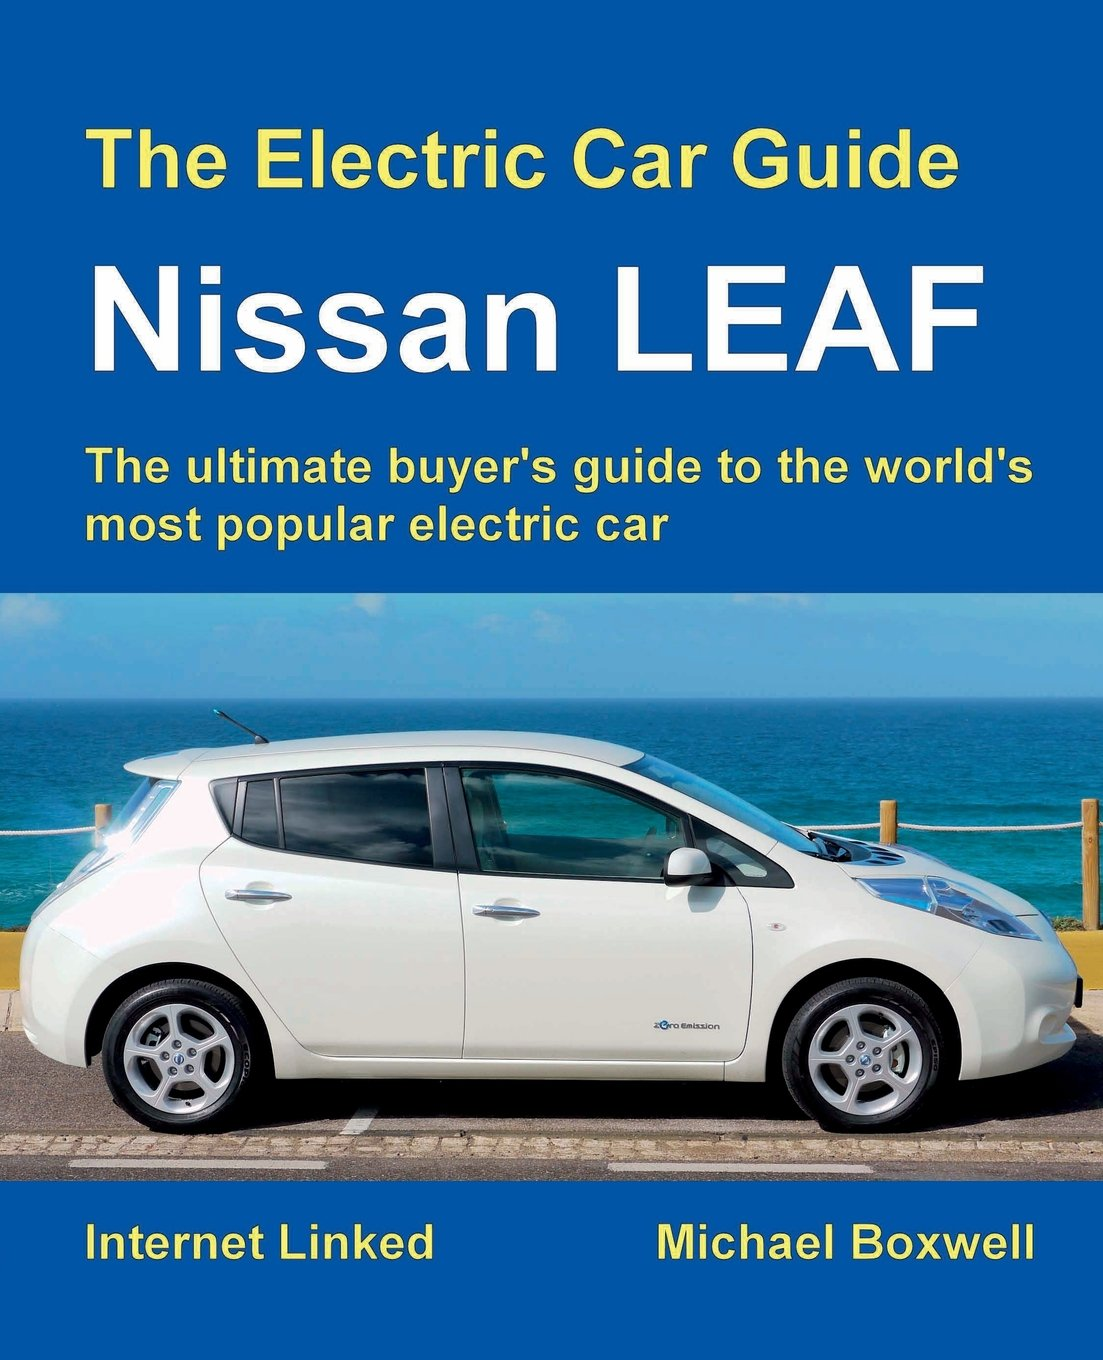 Lovely The Electric Car Guide: Nissan LEAF: Amazon.co.uk: Michael Boxwell:  9781907670480: Books